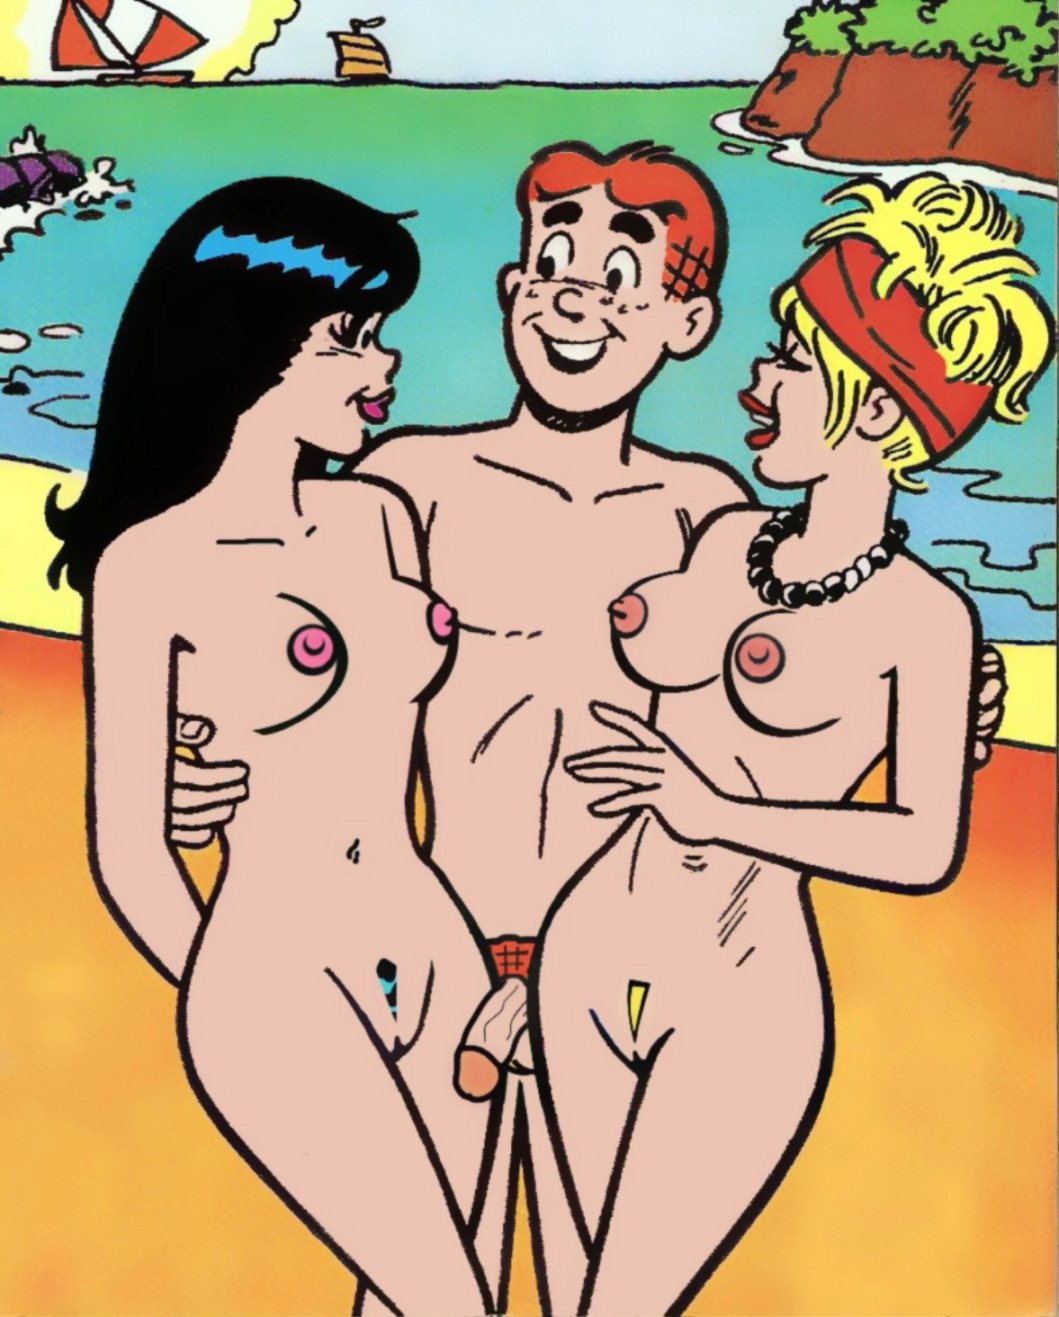 Archie rule 34